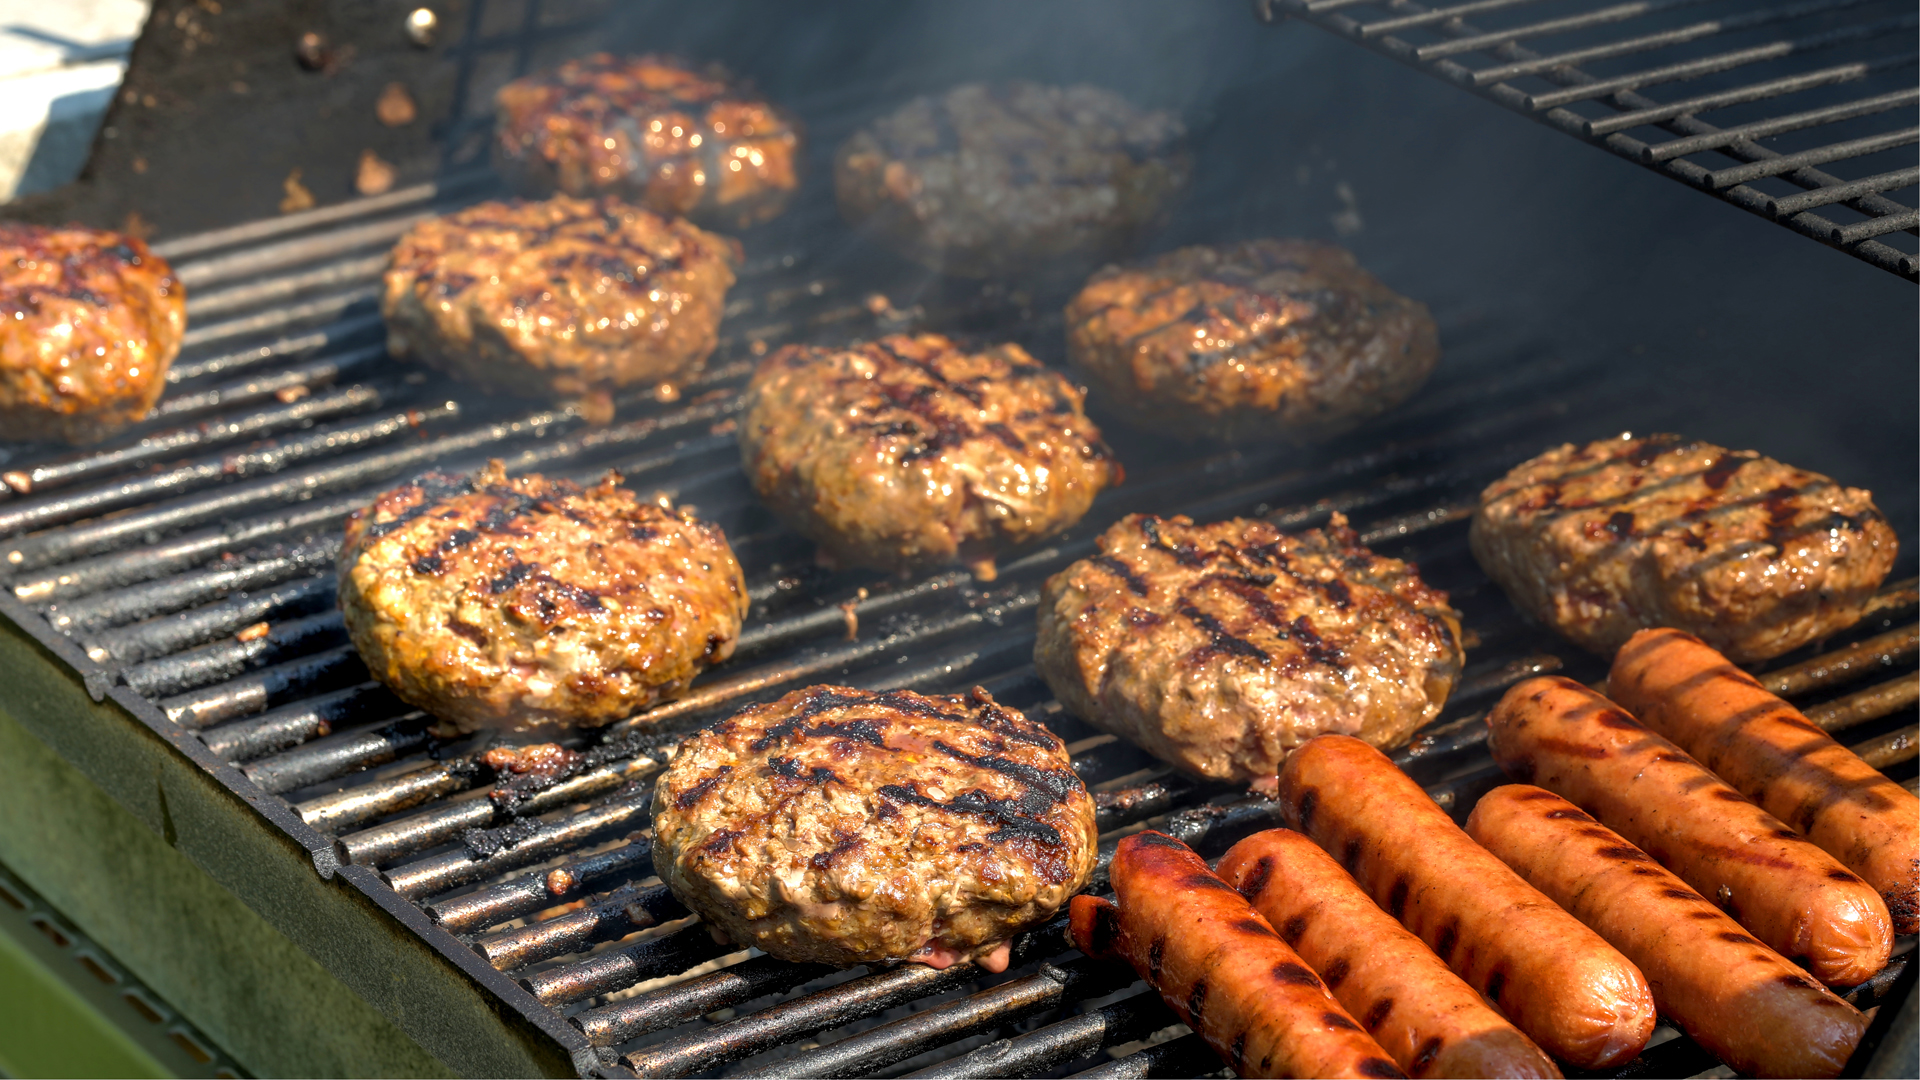 Hamburgers and hot dogs on a grill are seen in this file photo. (Credit: iStock/Getty Images Plus)